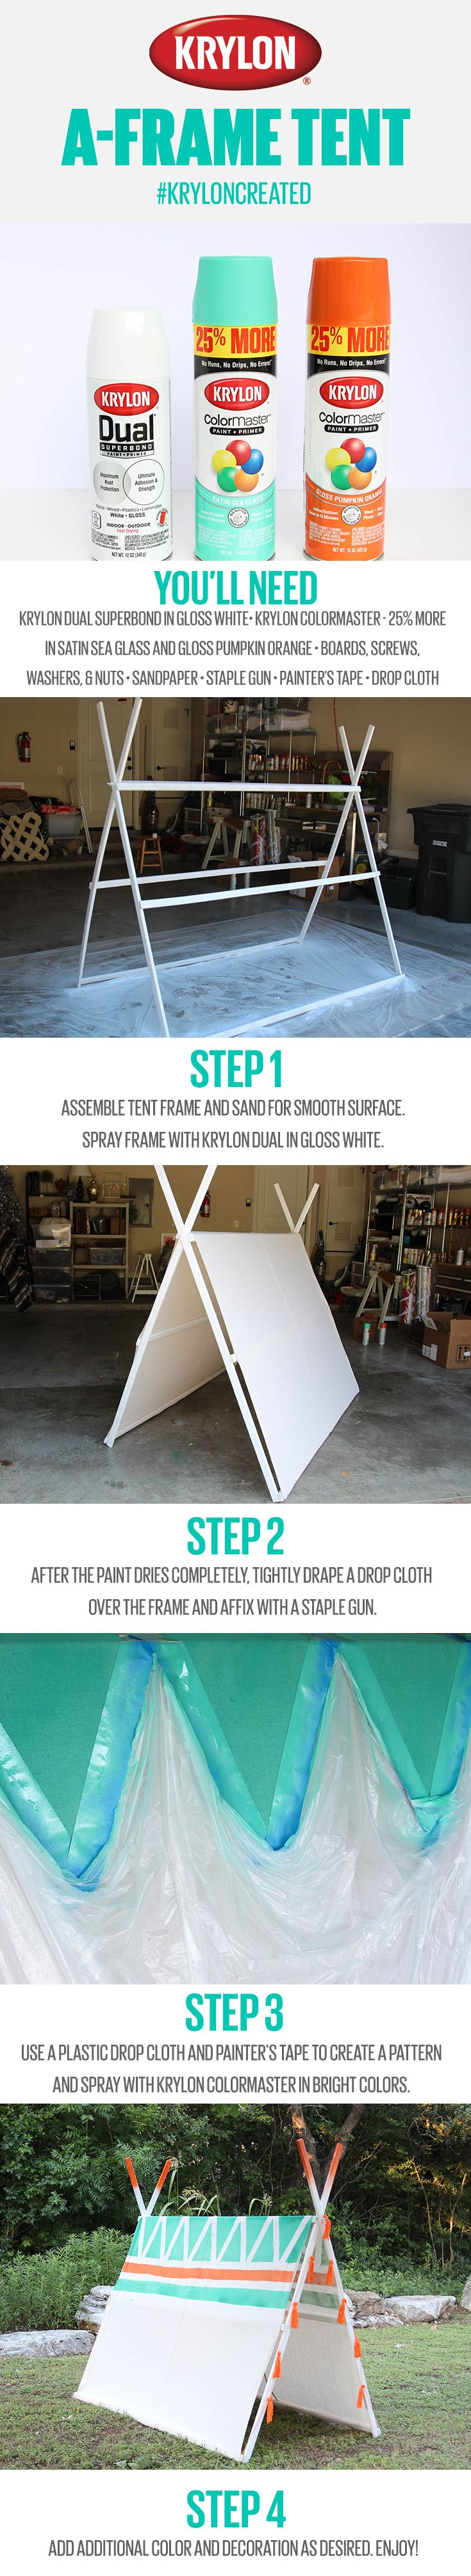 This summer is the perfect time for bright Krylon colors, bold patterns, and outdoor fun! Refresh your outdoor space with a colorful A-frame tent made with Krylon Dual Superbond in Gloss White and Krylon ColorMaster - 25% More in Satin Sea Glass and Gloss Pumpkin Orange. Click the pin for the full guide and create your own!